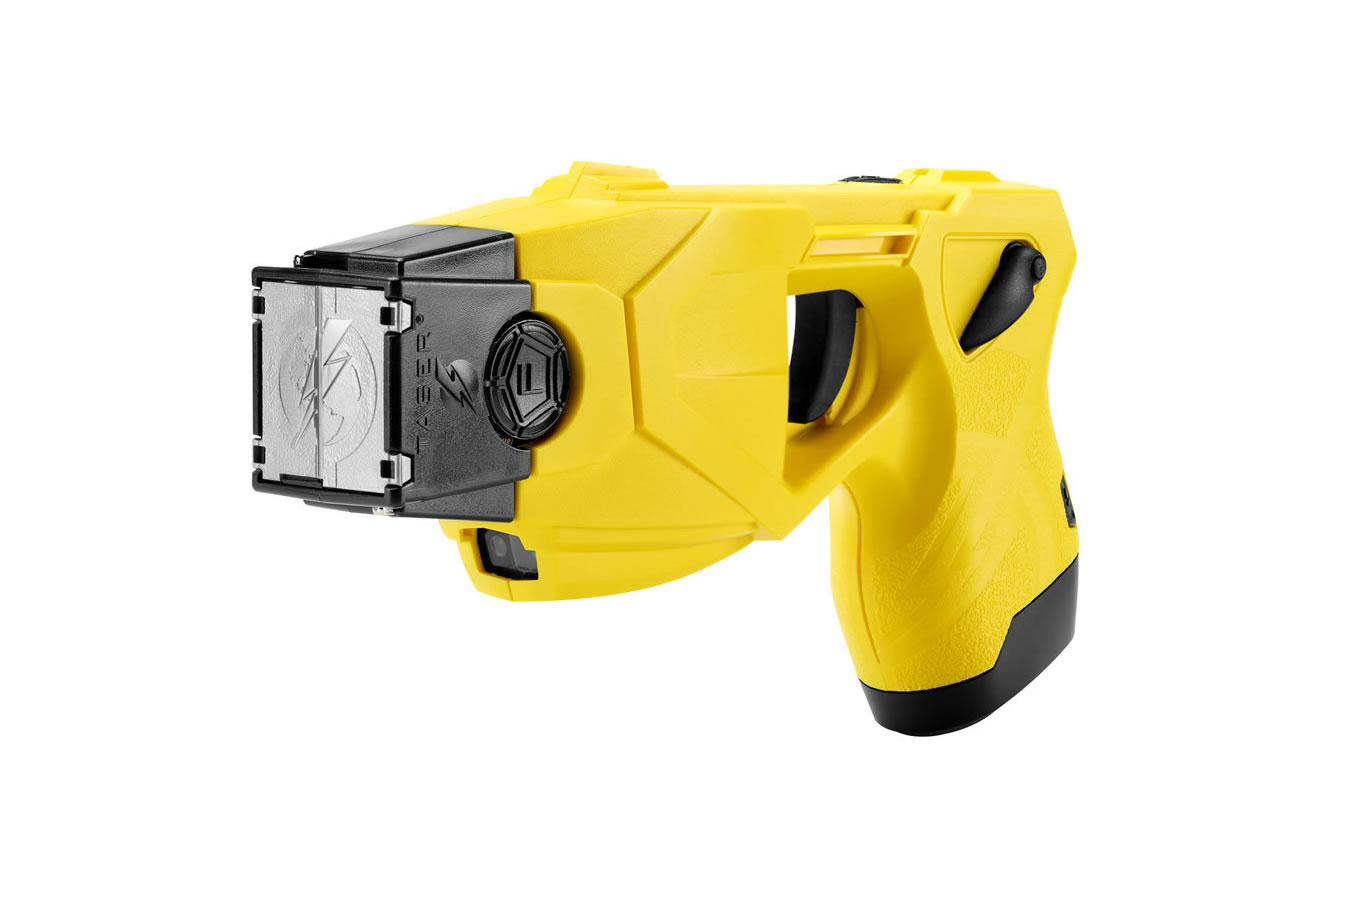 TASER X26P YELLOW HANDLE ONLY